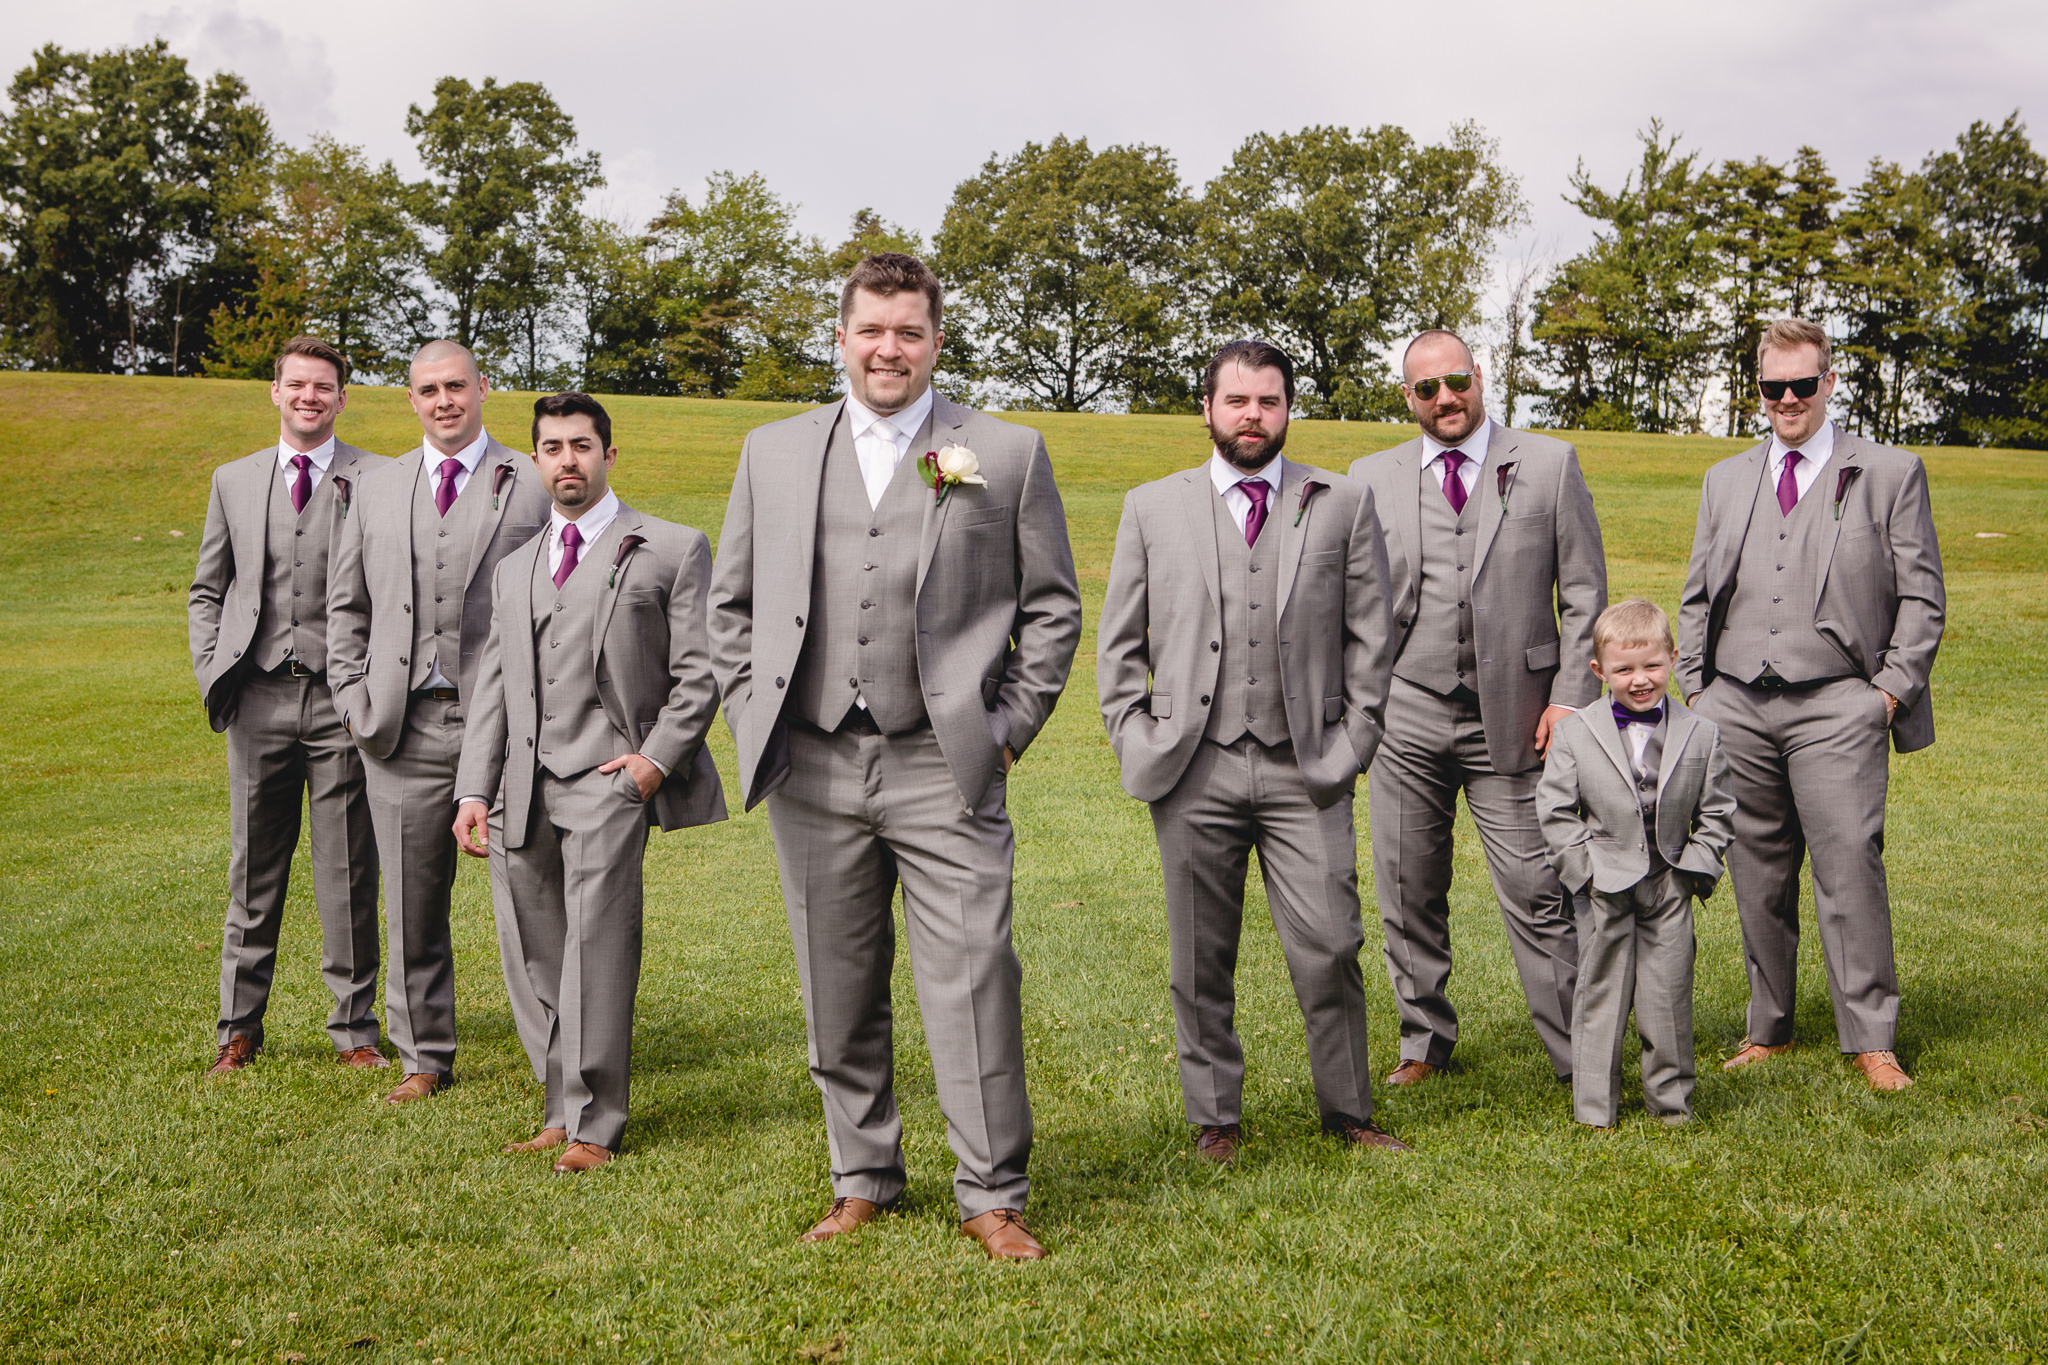 Groom and groomsmen at the White Barn before a September wedding